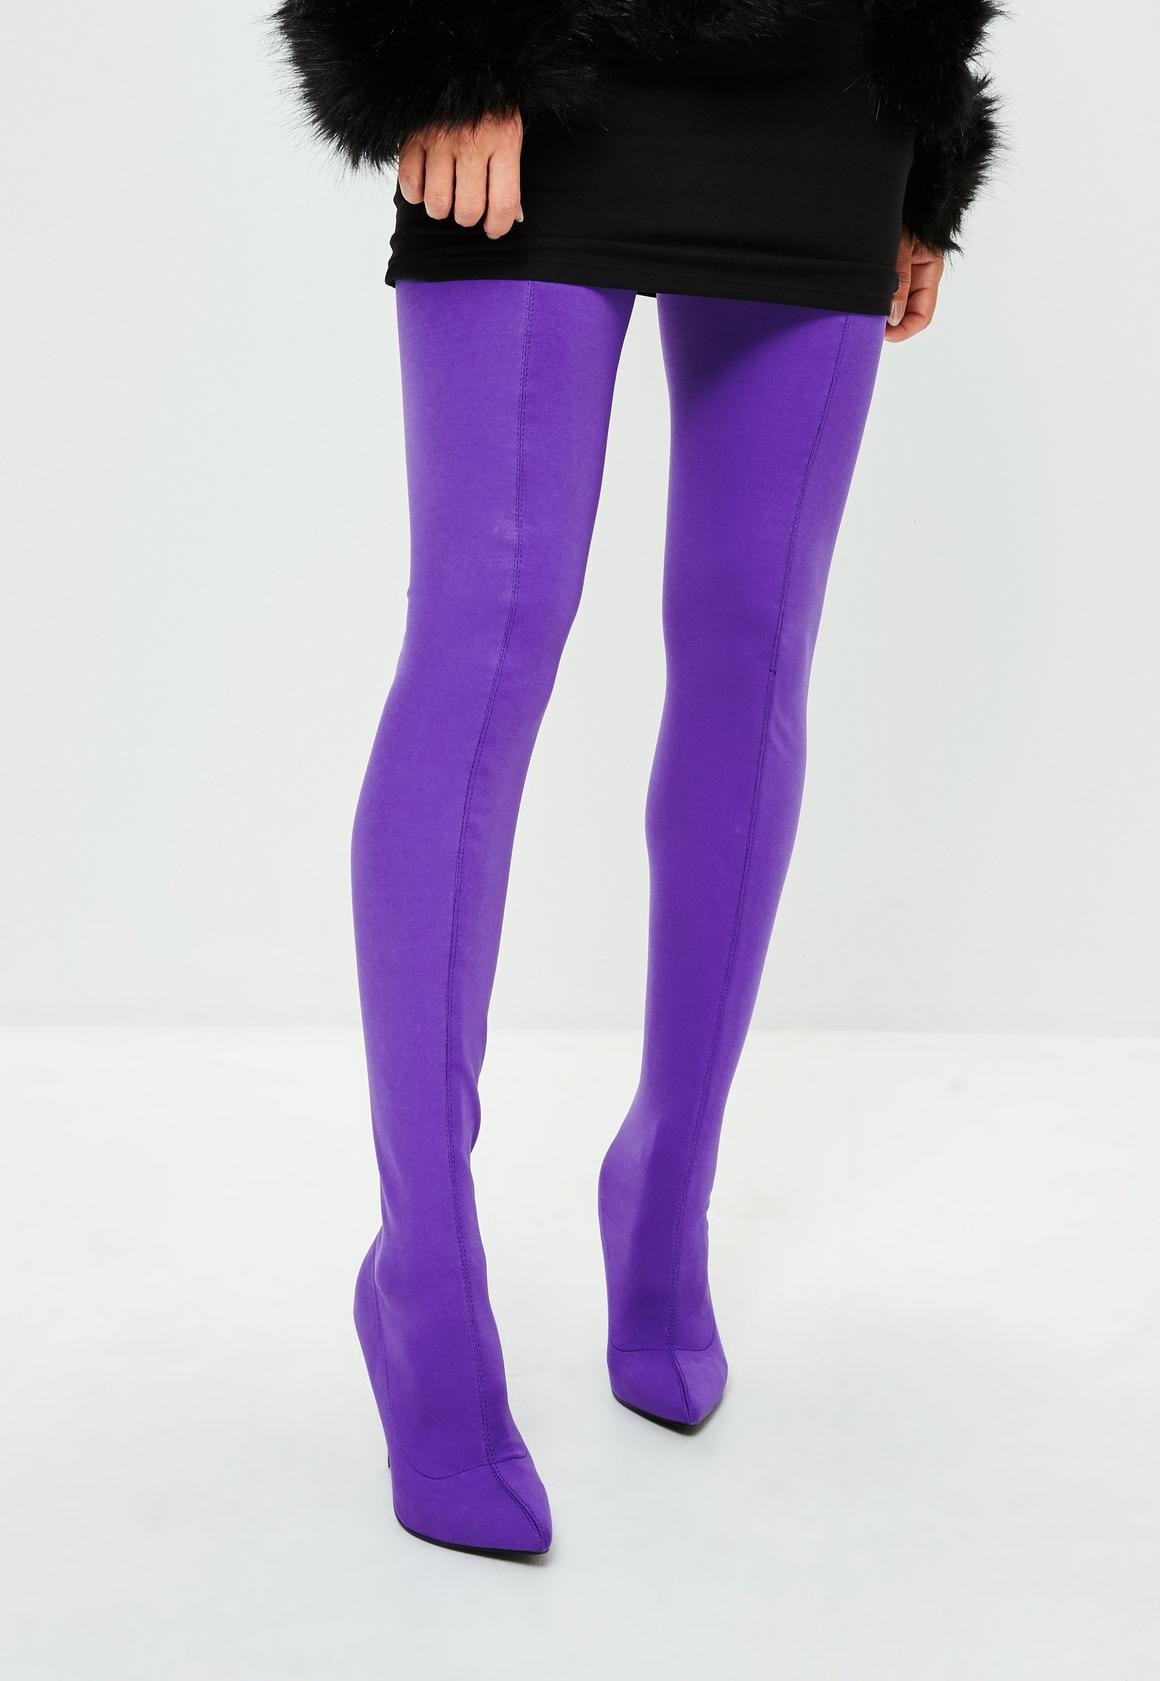 Image result for purple thigh high boots